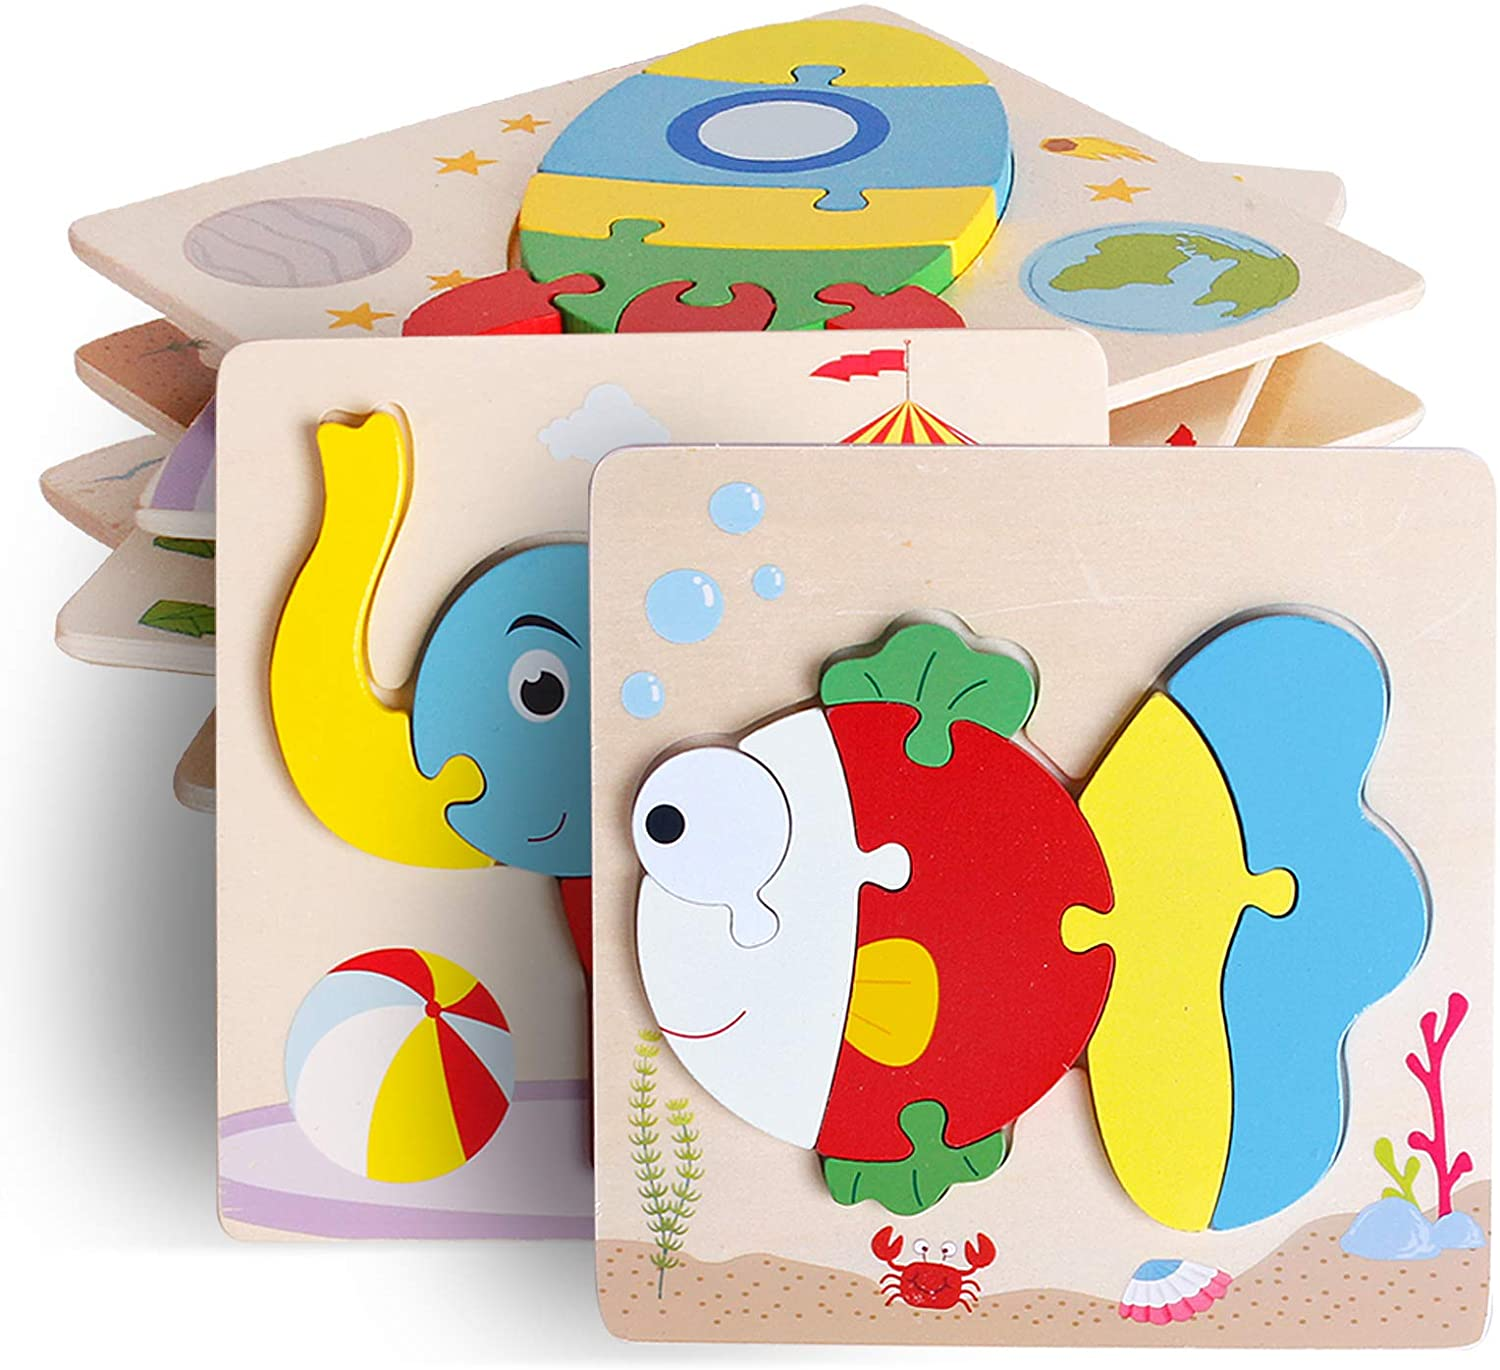 animal wooden puzzle for children